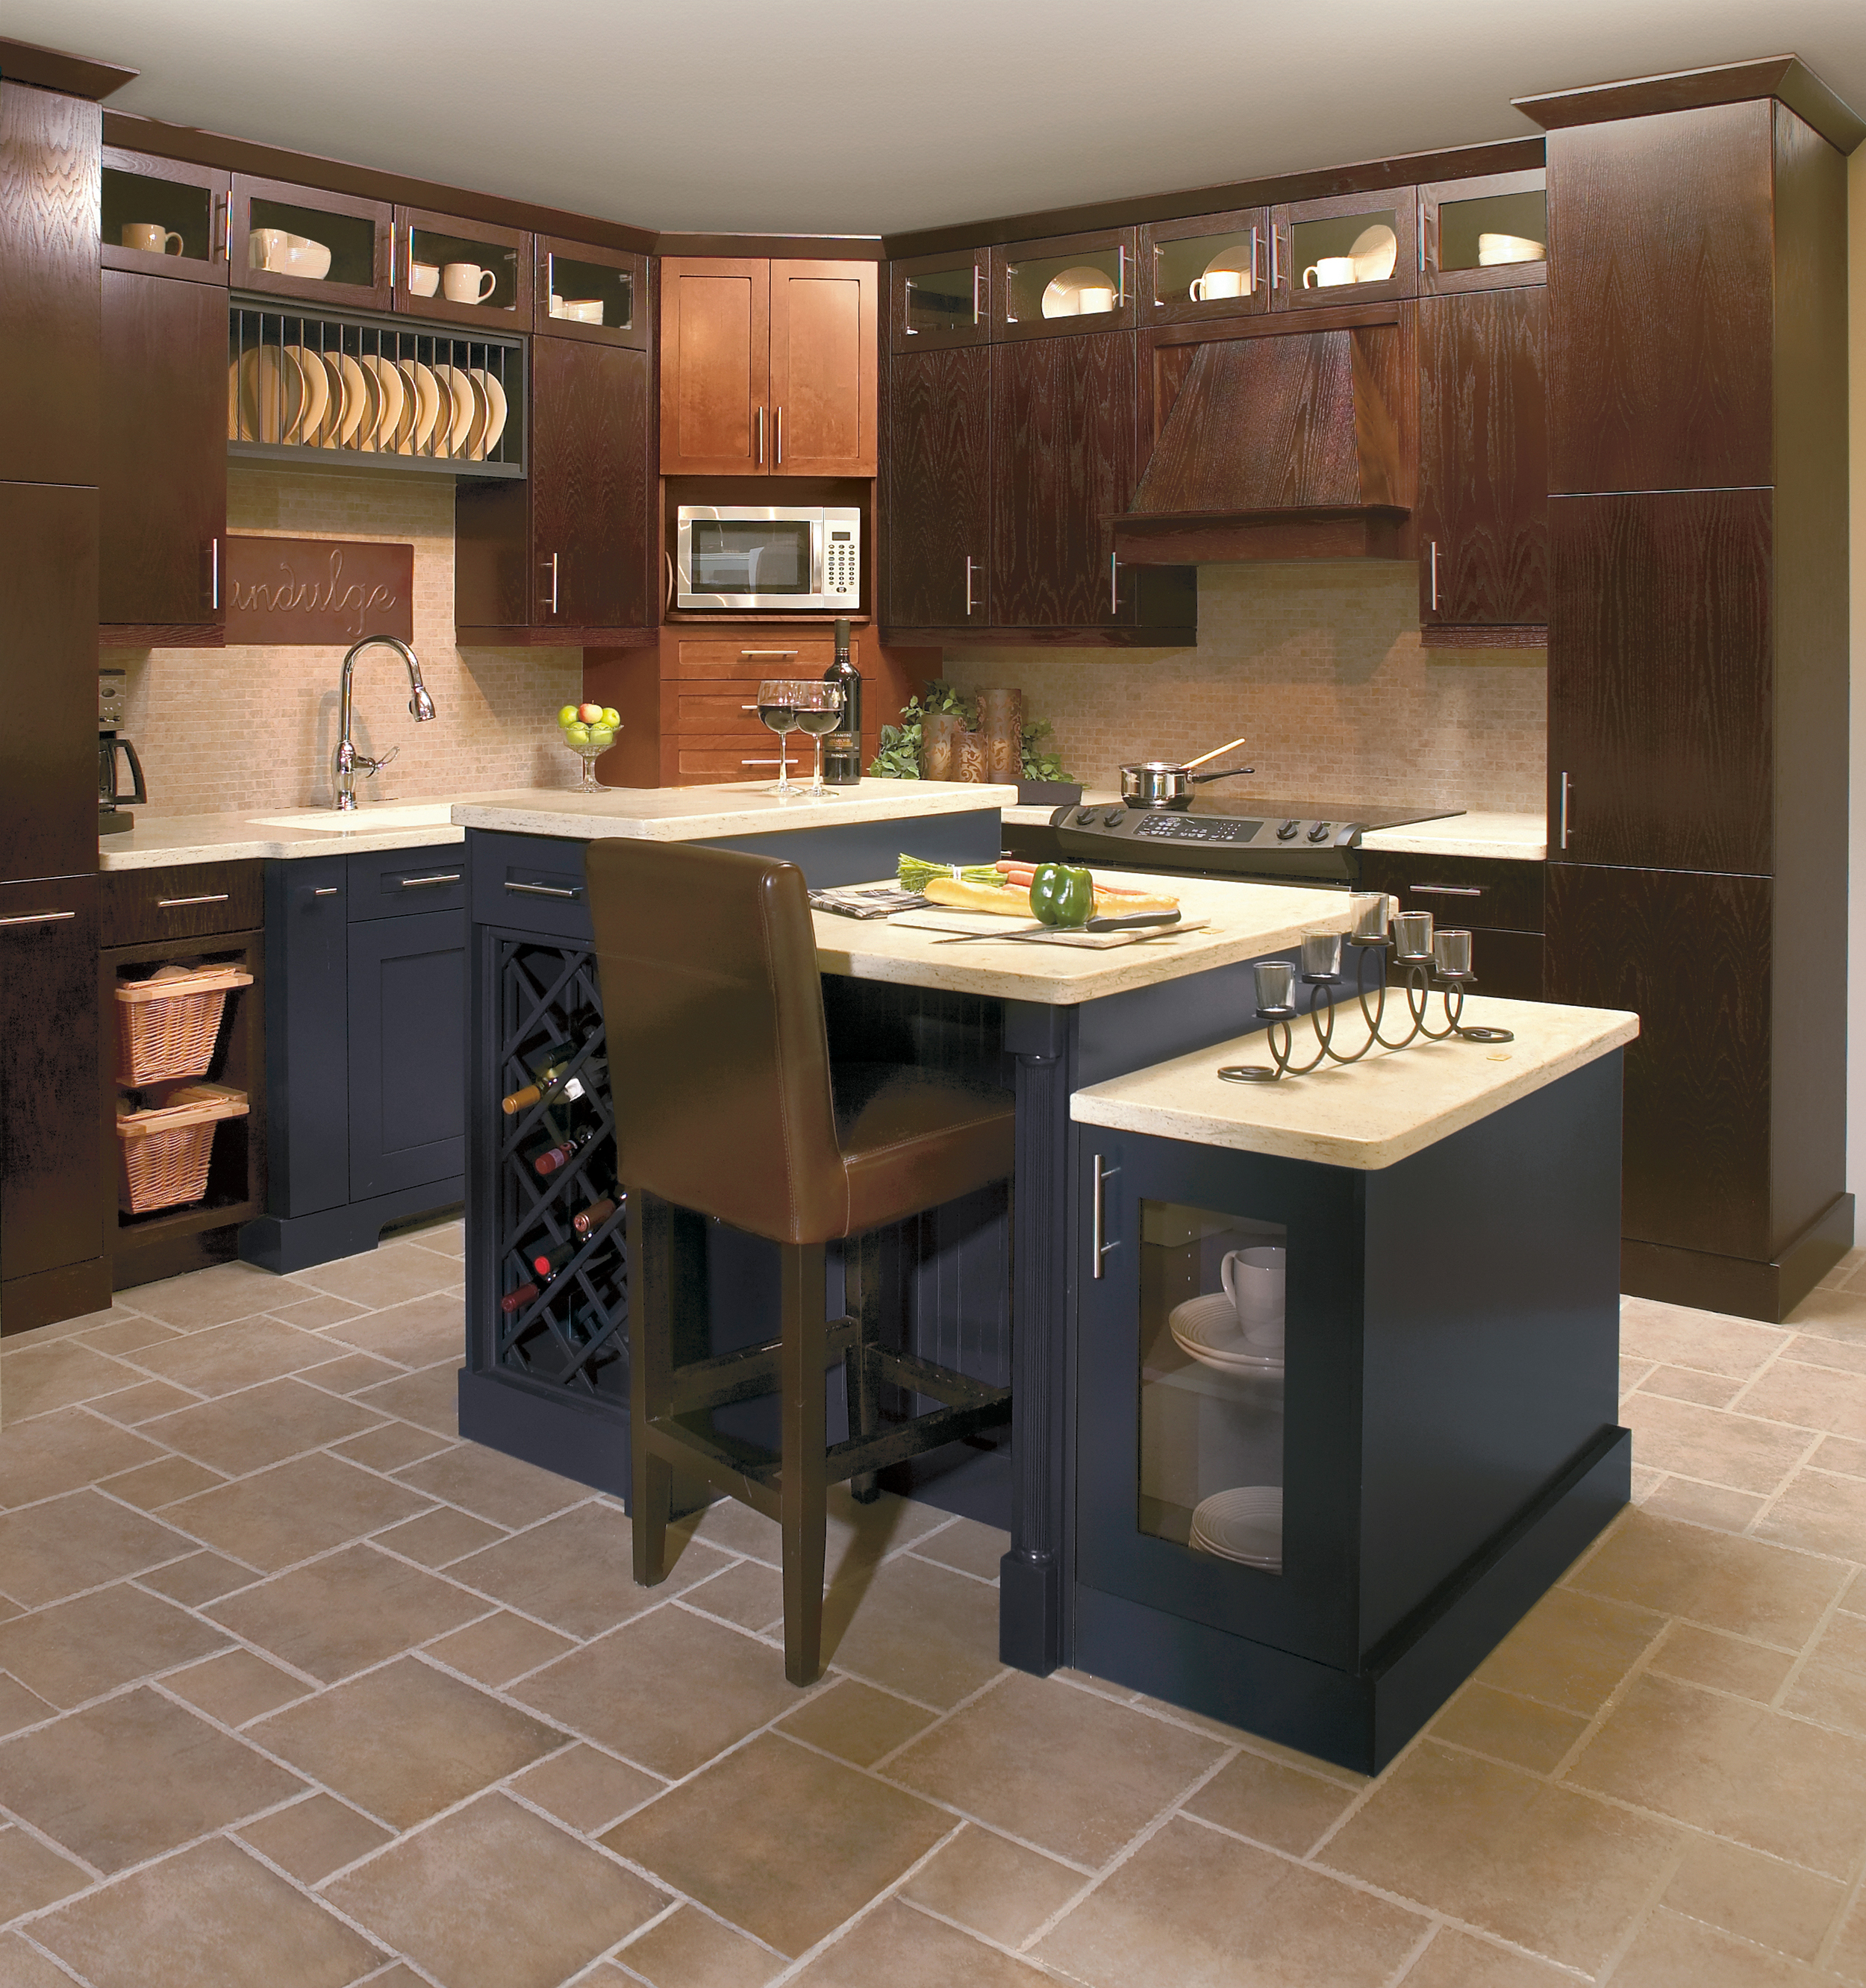 Cabinetry custom derry nh cabinets north shore ma for Kitchen cabinets quality levels